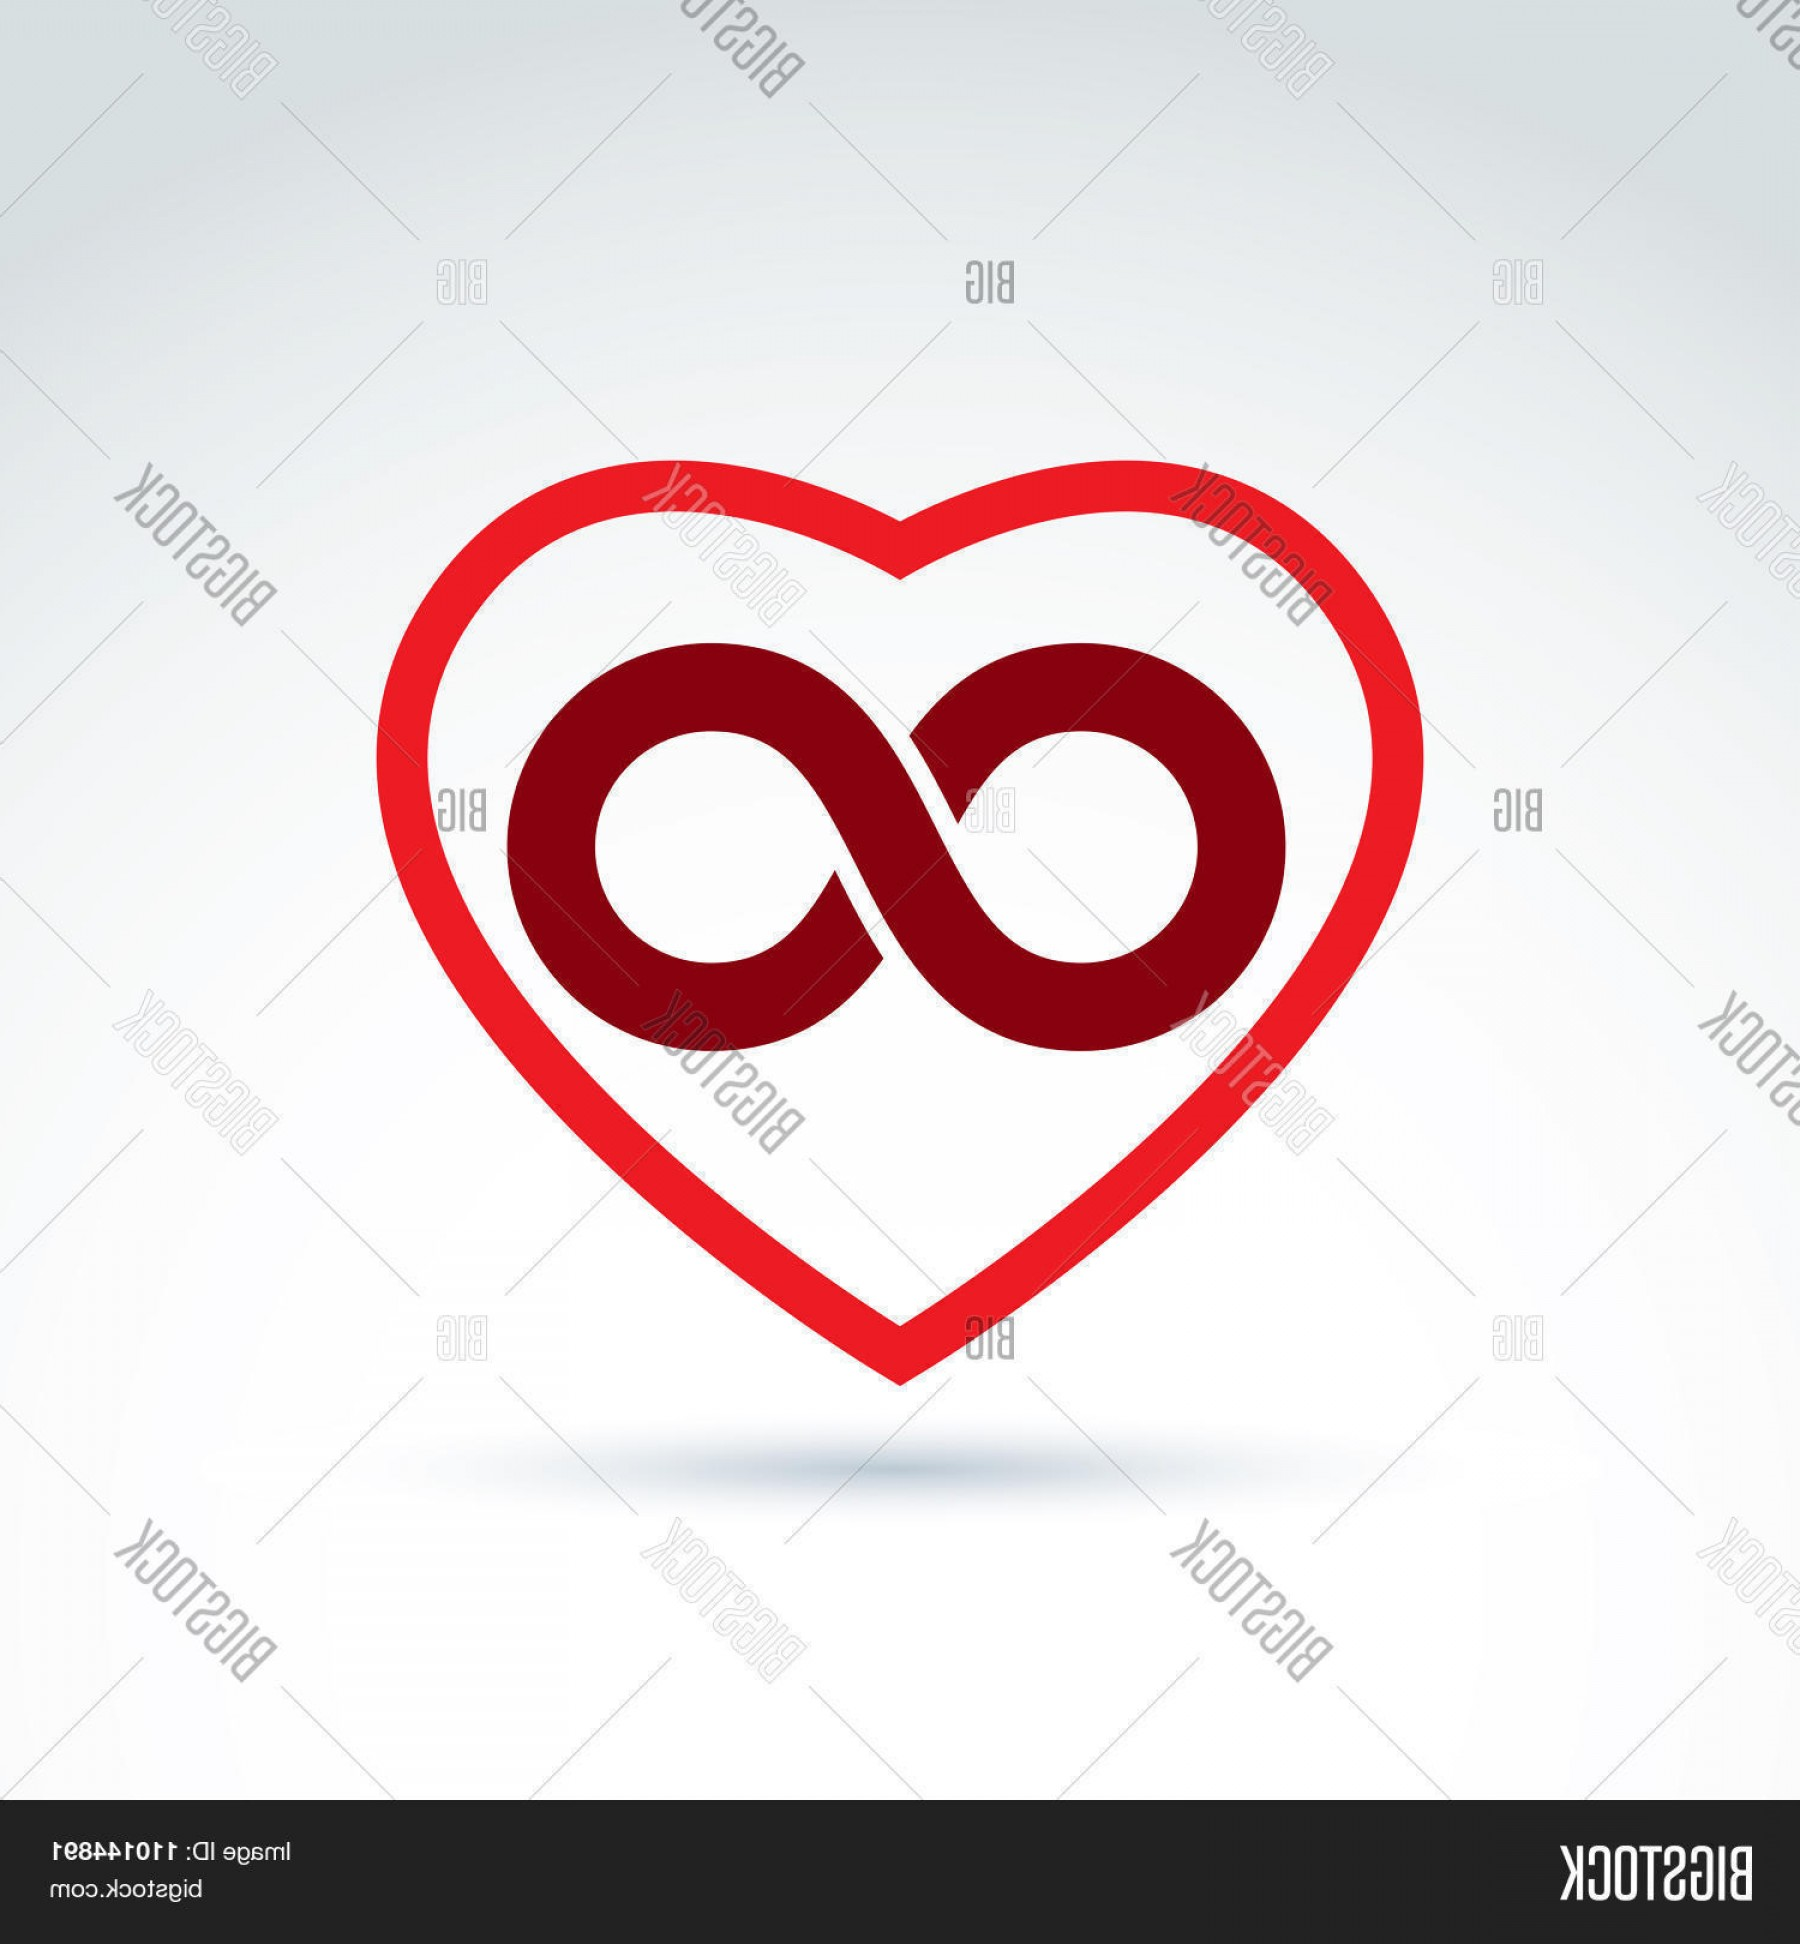 Vector Infinity Symbol Hearts: Stock Vector Vector Infinity Iconc Eternal Life Idea Illustration Of An Eternity Symbol Placed On Red Heart